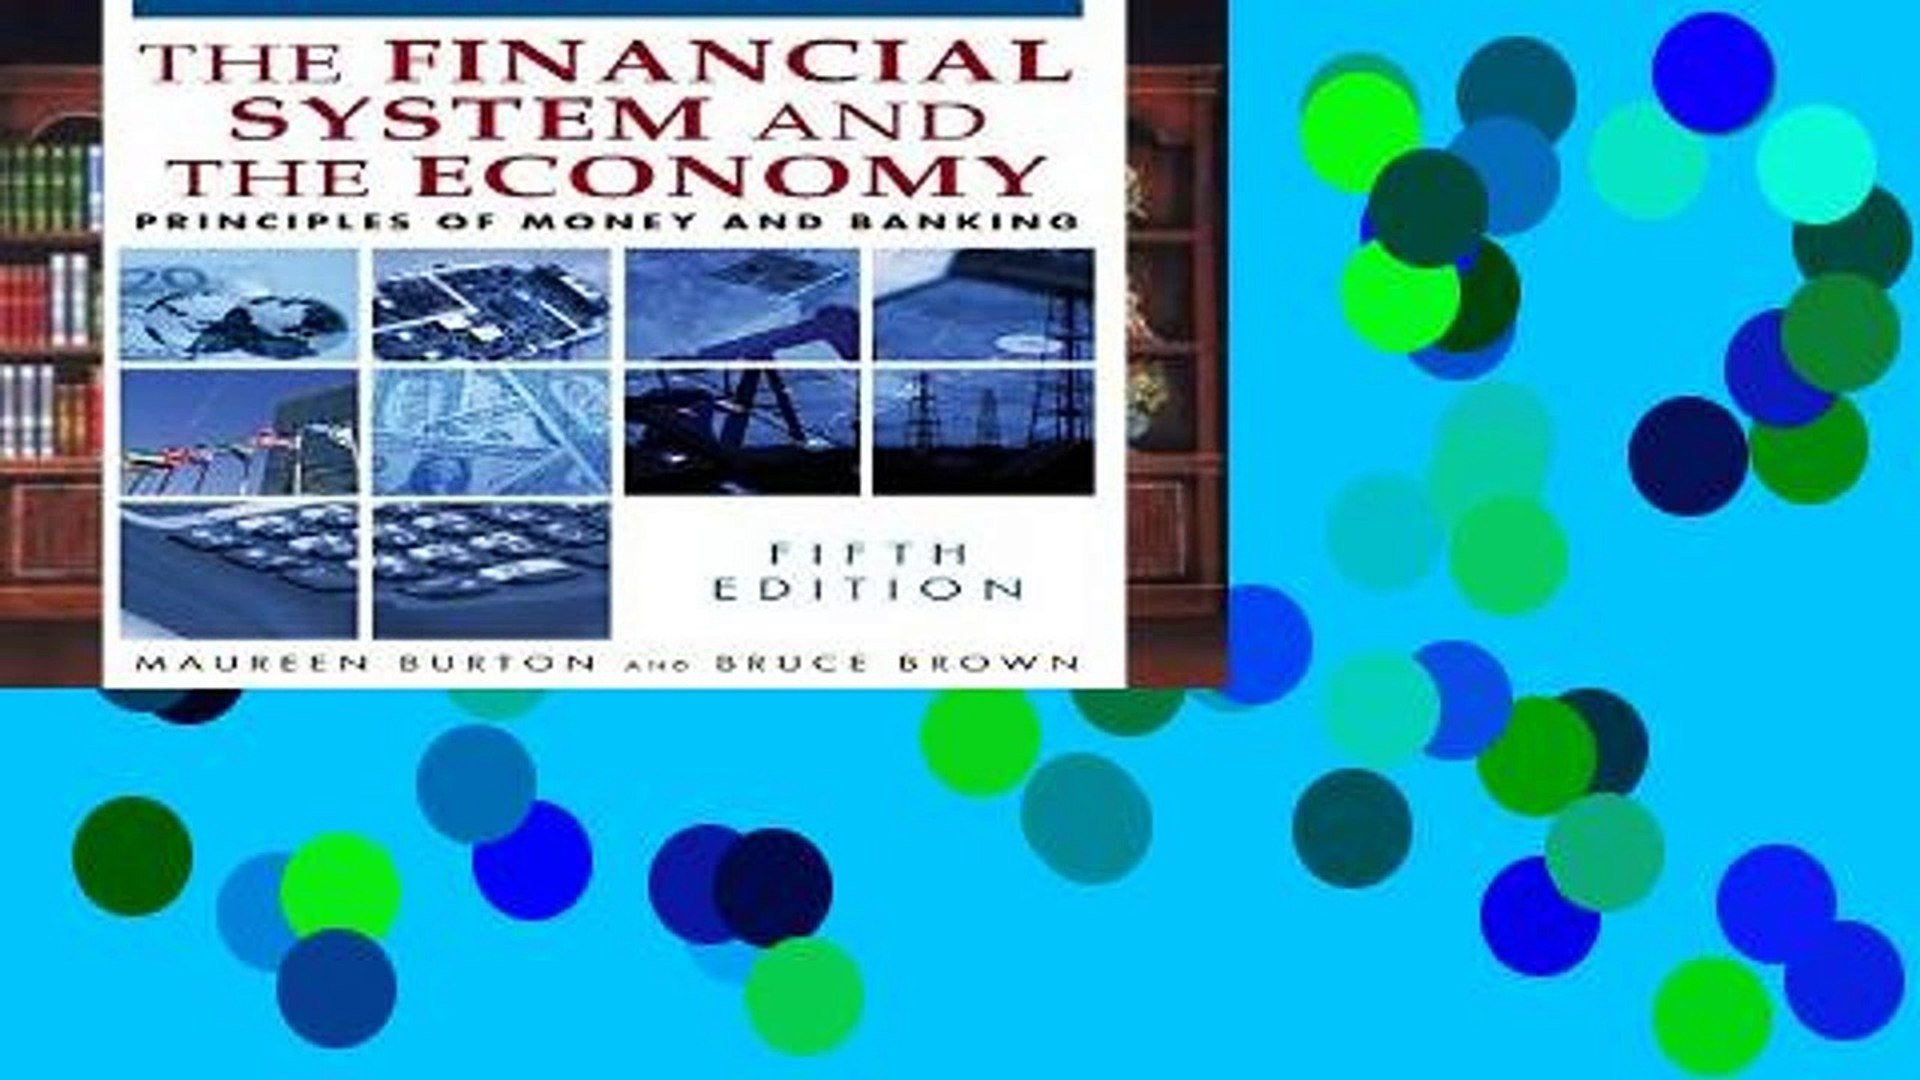 Reading Online Financial System of the Economy: Principles of Money and Banking Full access